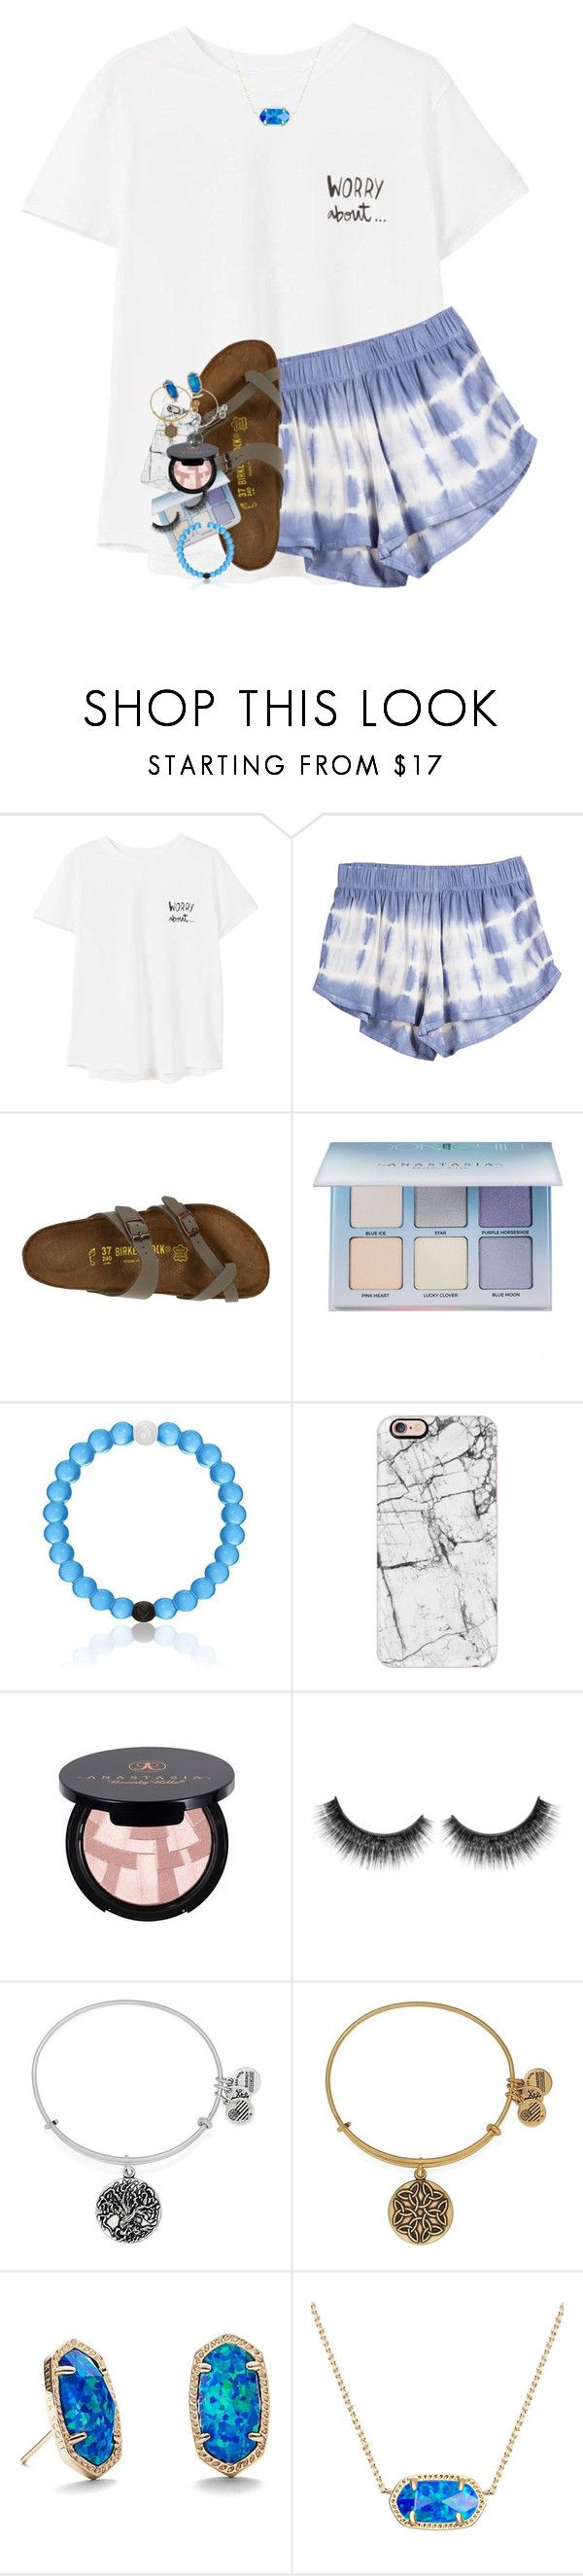 """""""ravenclaw pride day!"""" by lindsaygreys ❤ liked on Polyvore featuring MANGO, Birkenstock, Anastasia Beverly Hills, Casetify, Alex and Ani and Kendra Scott"""